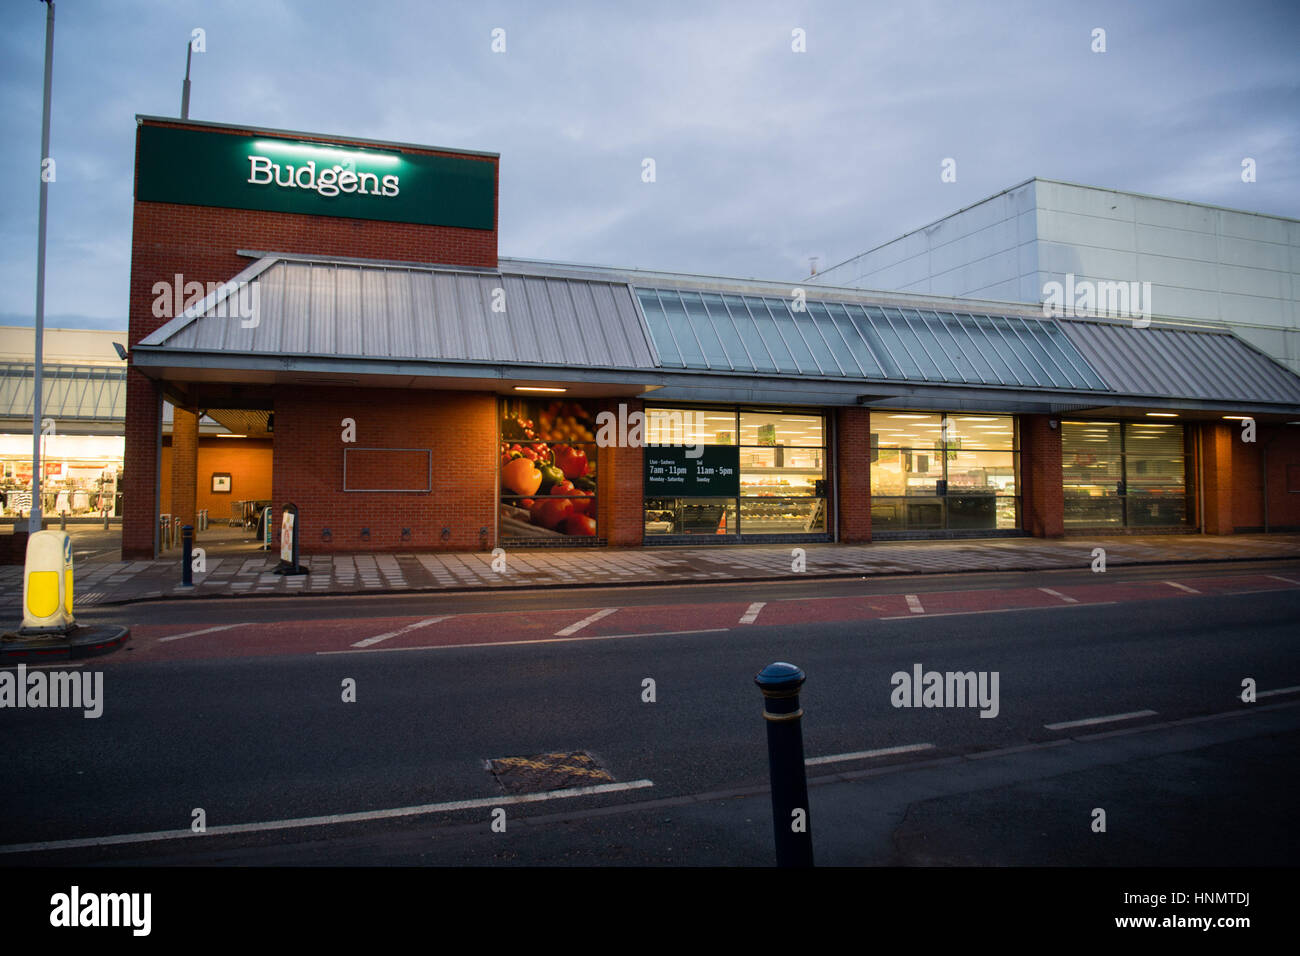 Aberystwyth, Wales, UK. 14th Feb, 2017. Budgens supermarket chain has today (Feb 14 2017) announced that it is going - Stock Image